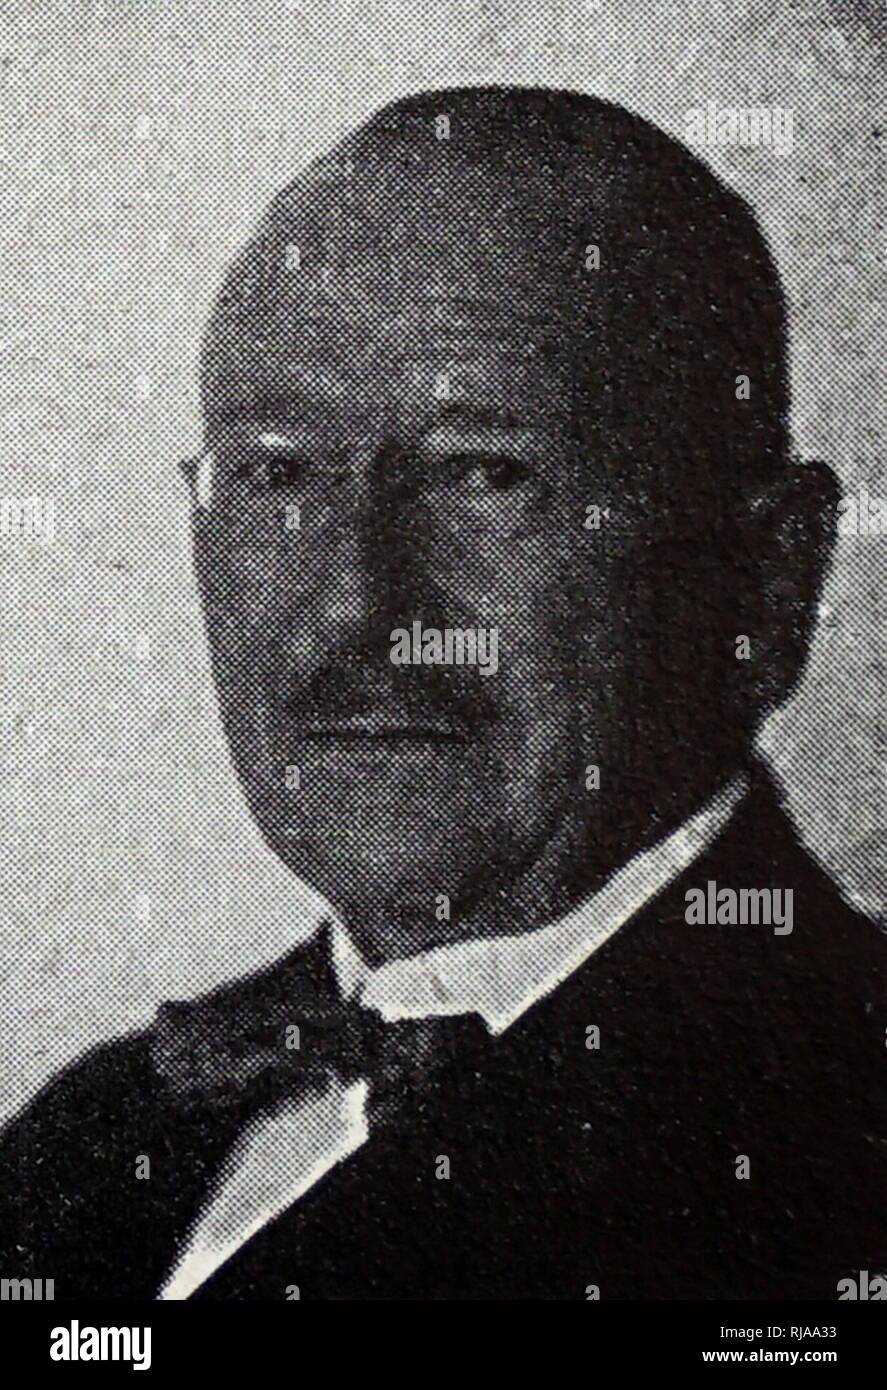 Erckrath de bary, Olympic games athletics official, Berlin 1936 - Stock Image